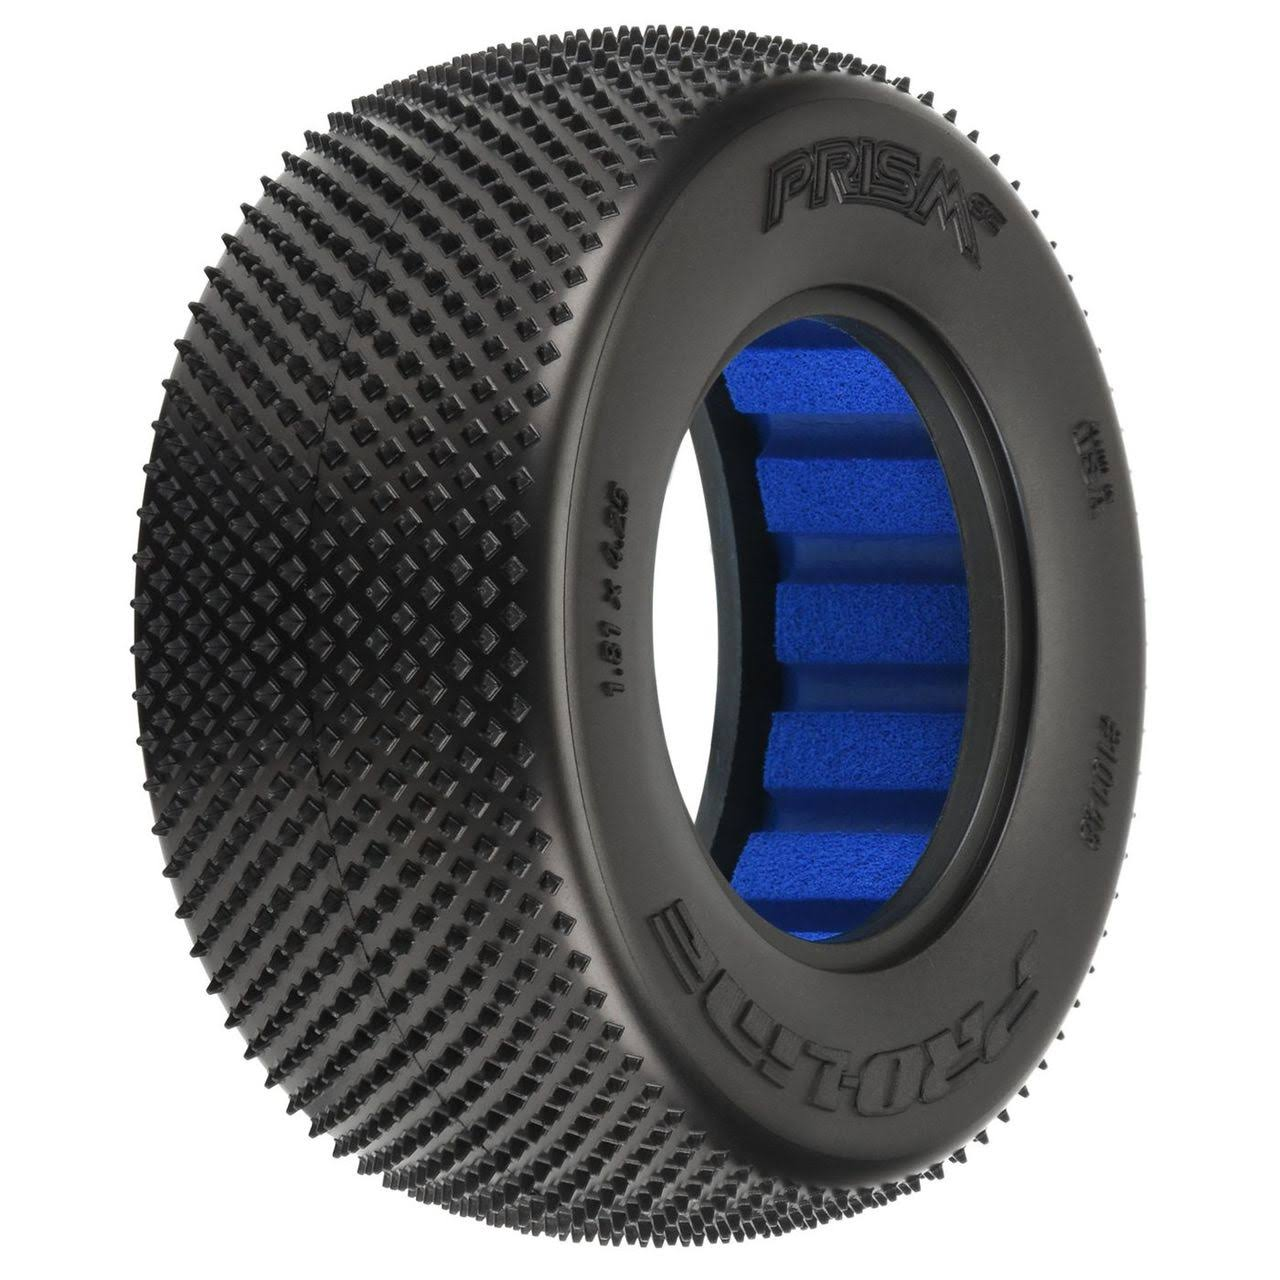 Pro Line Racing Rc Car Tires Rear Prism SC 2.2 3.0 Z3 Off Road Carpet Tires